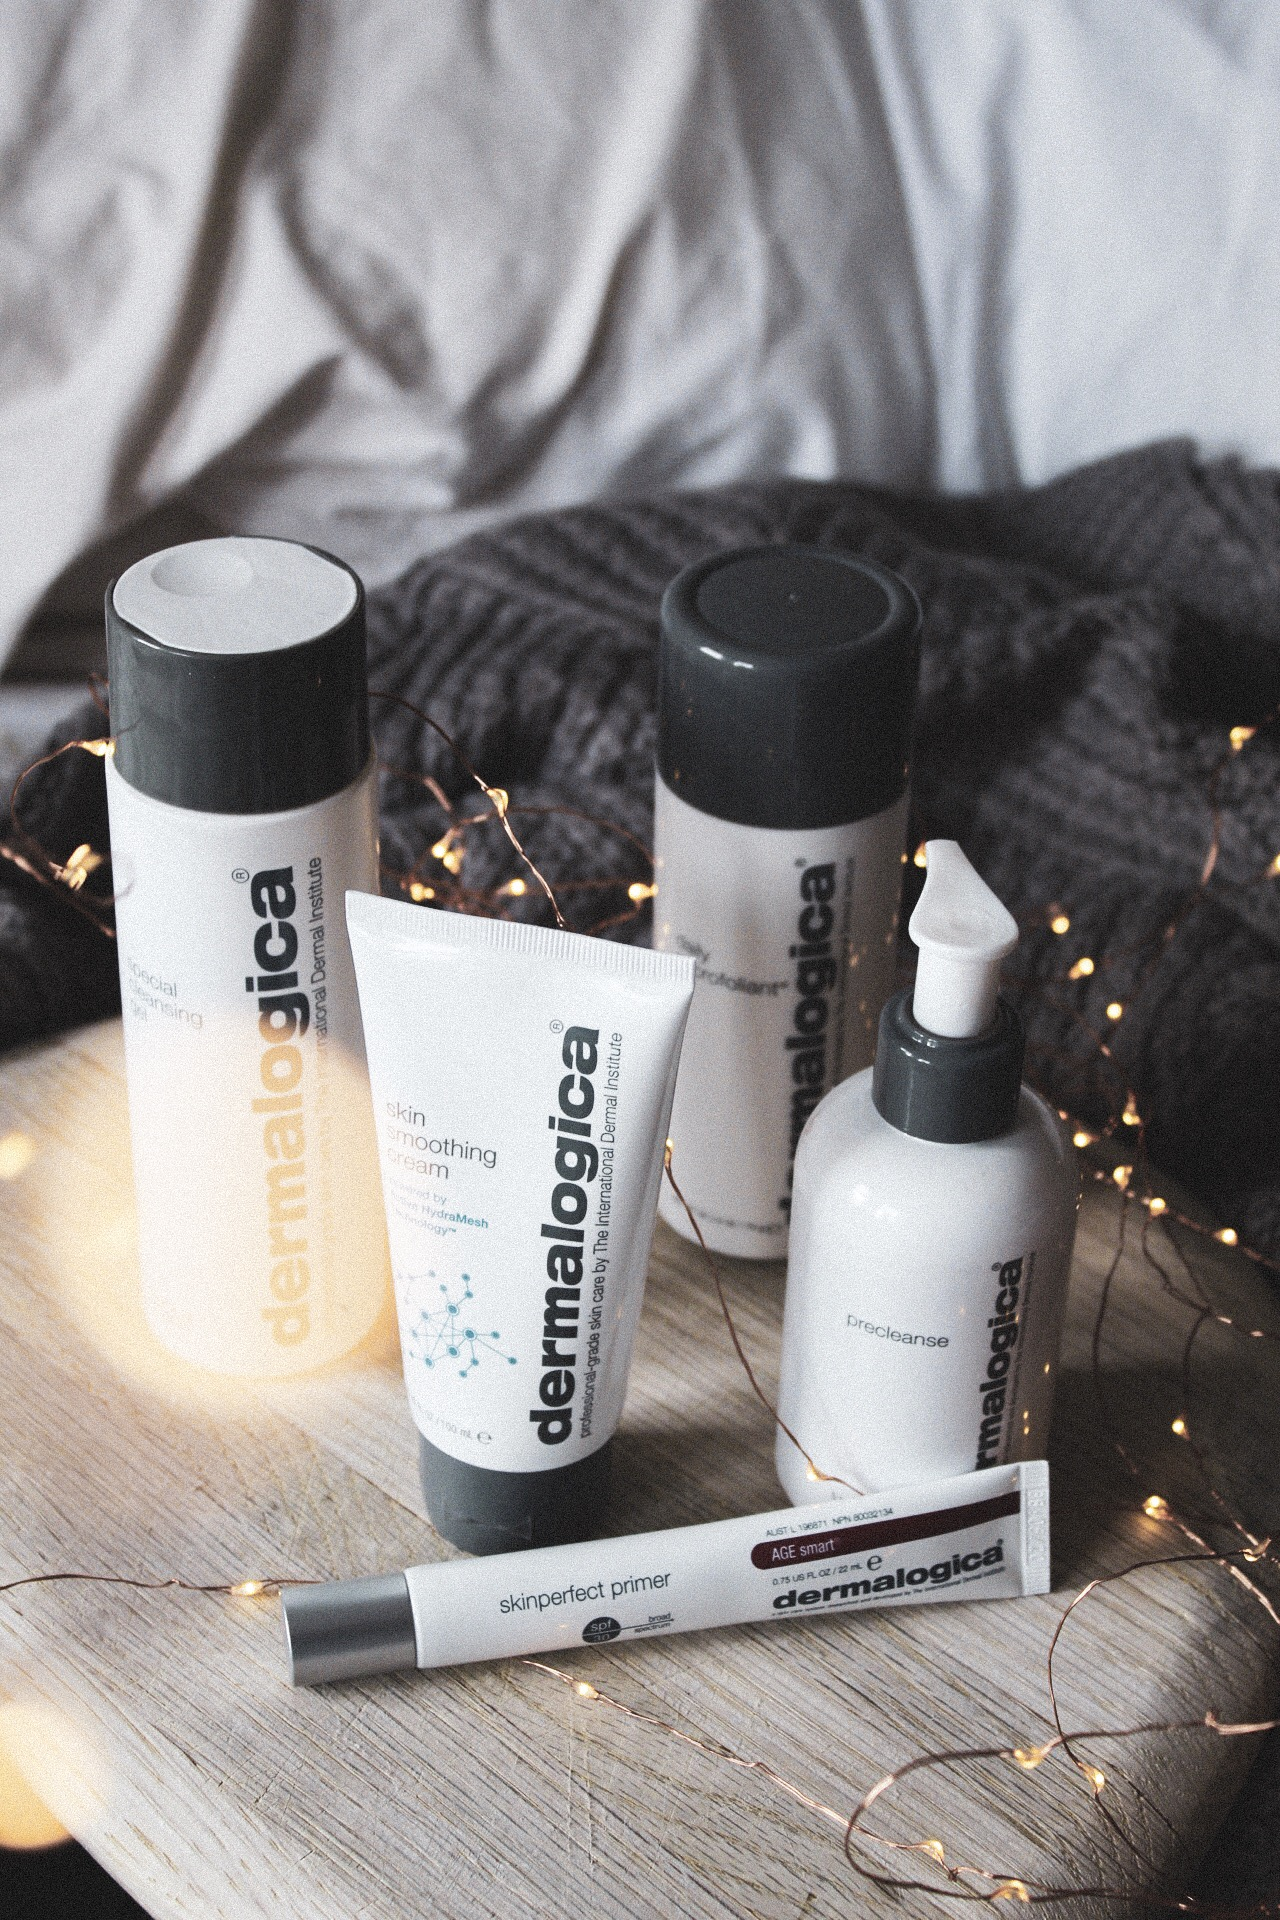 Winter Skincare with Dermalogica